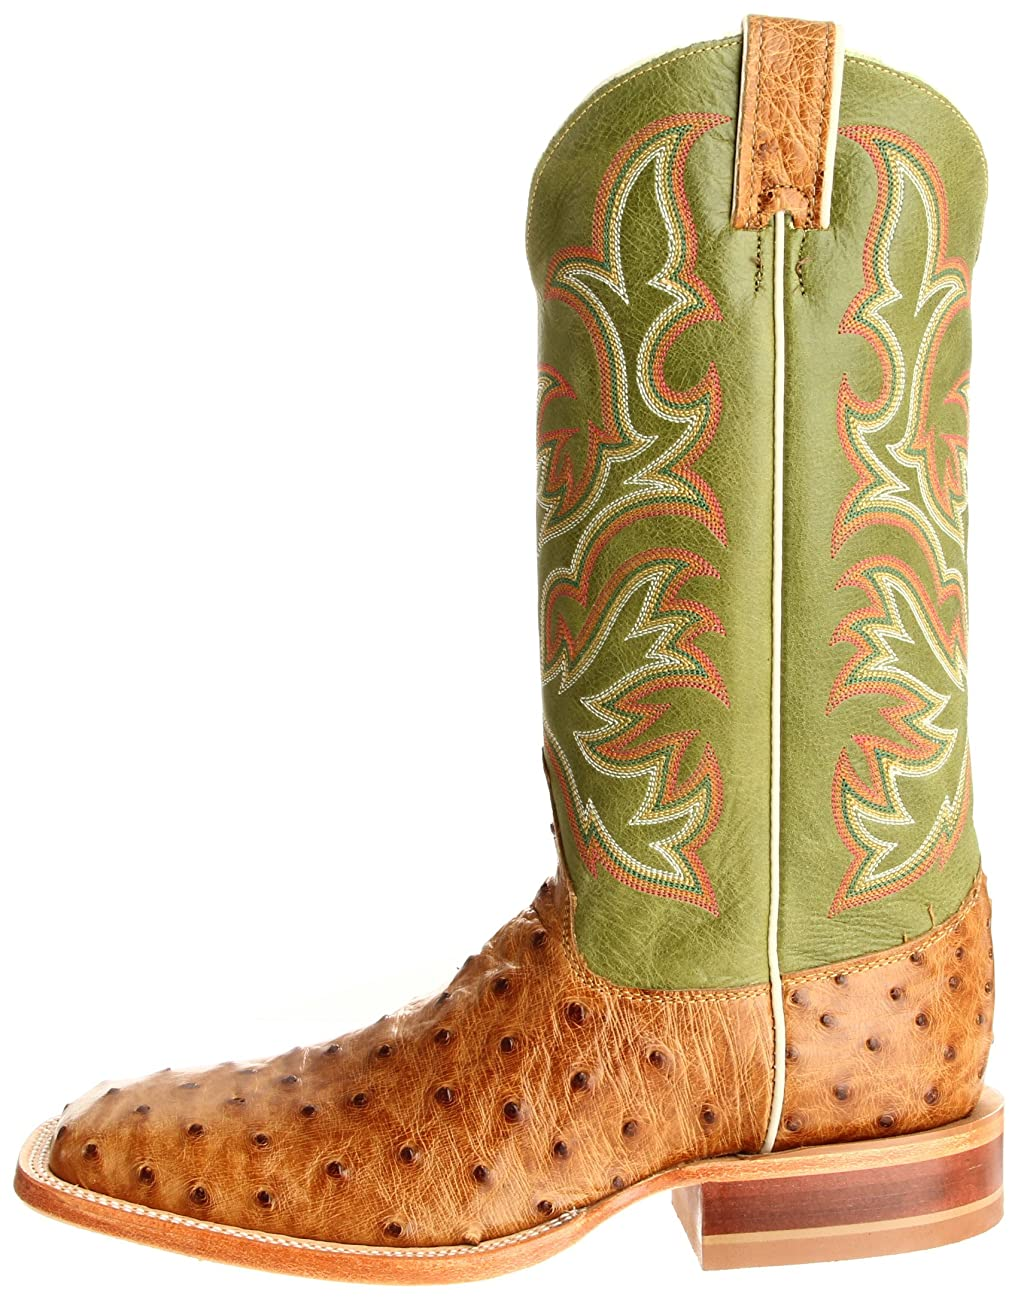 Justin Boots Men's Aqha Broad Square-toe Remuda Boot 6